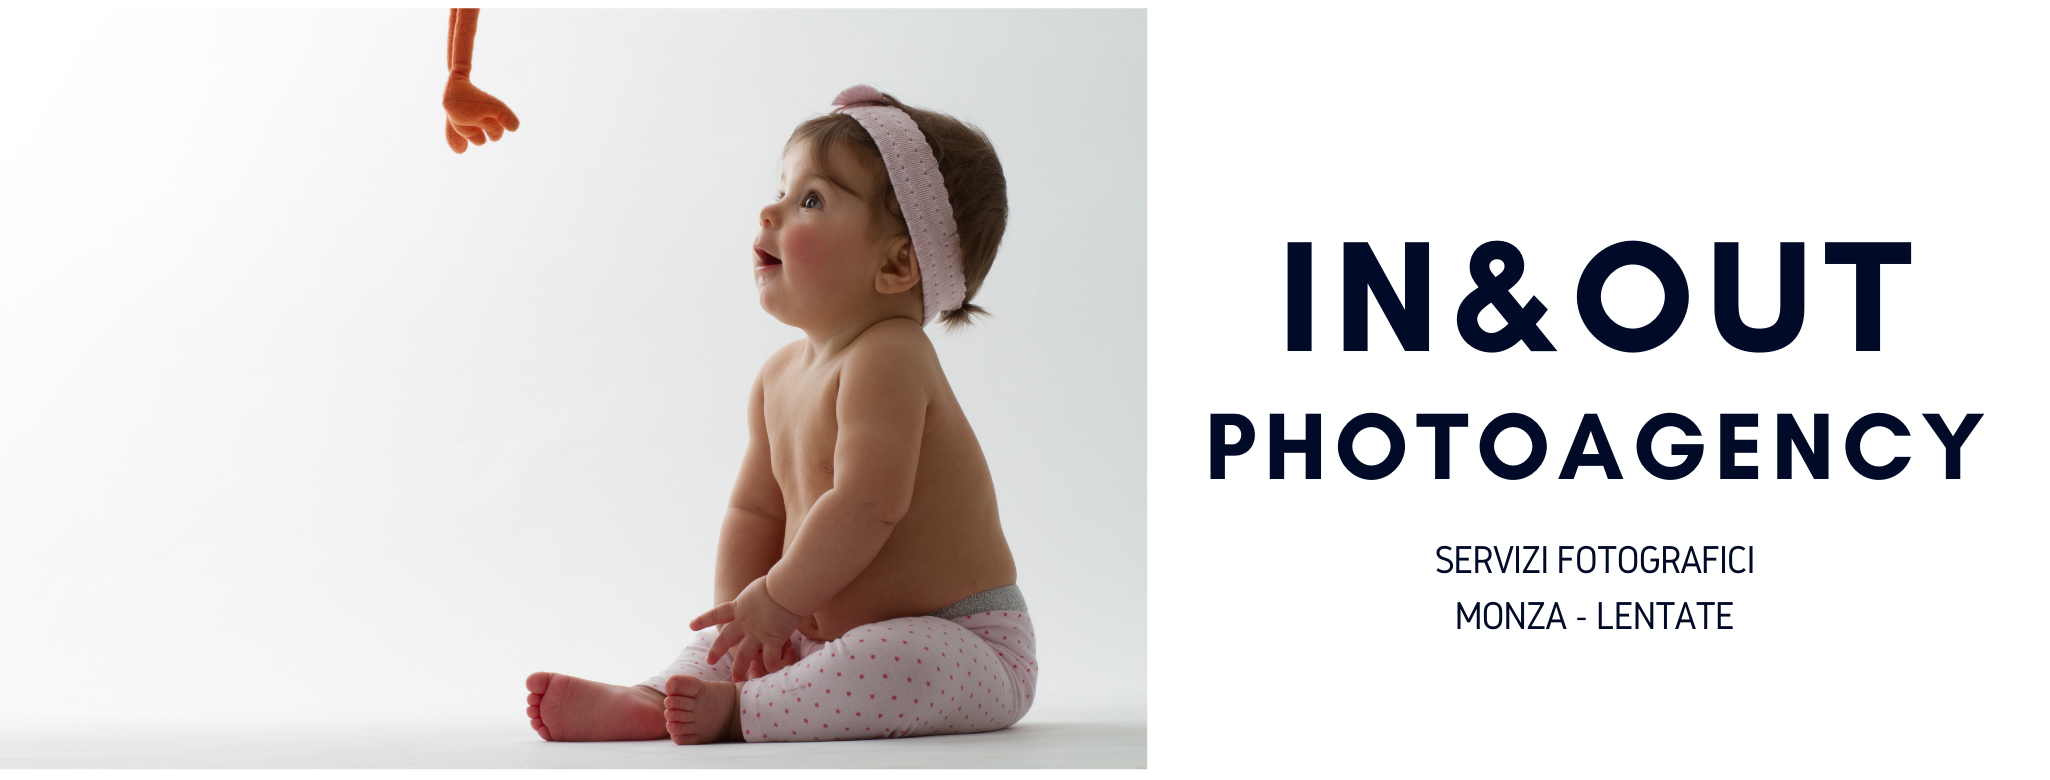 In&Out PhotoAgency